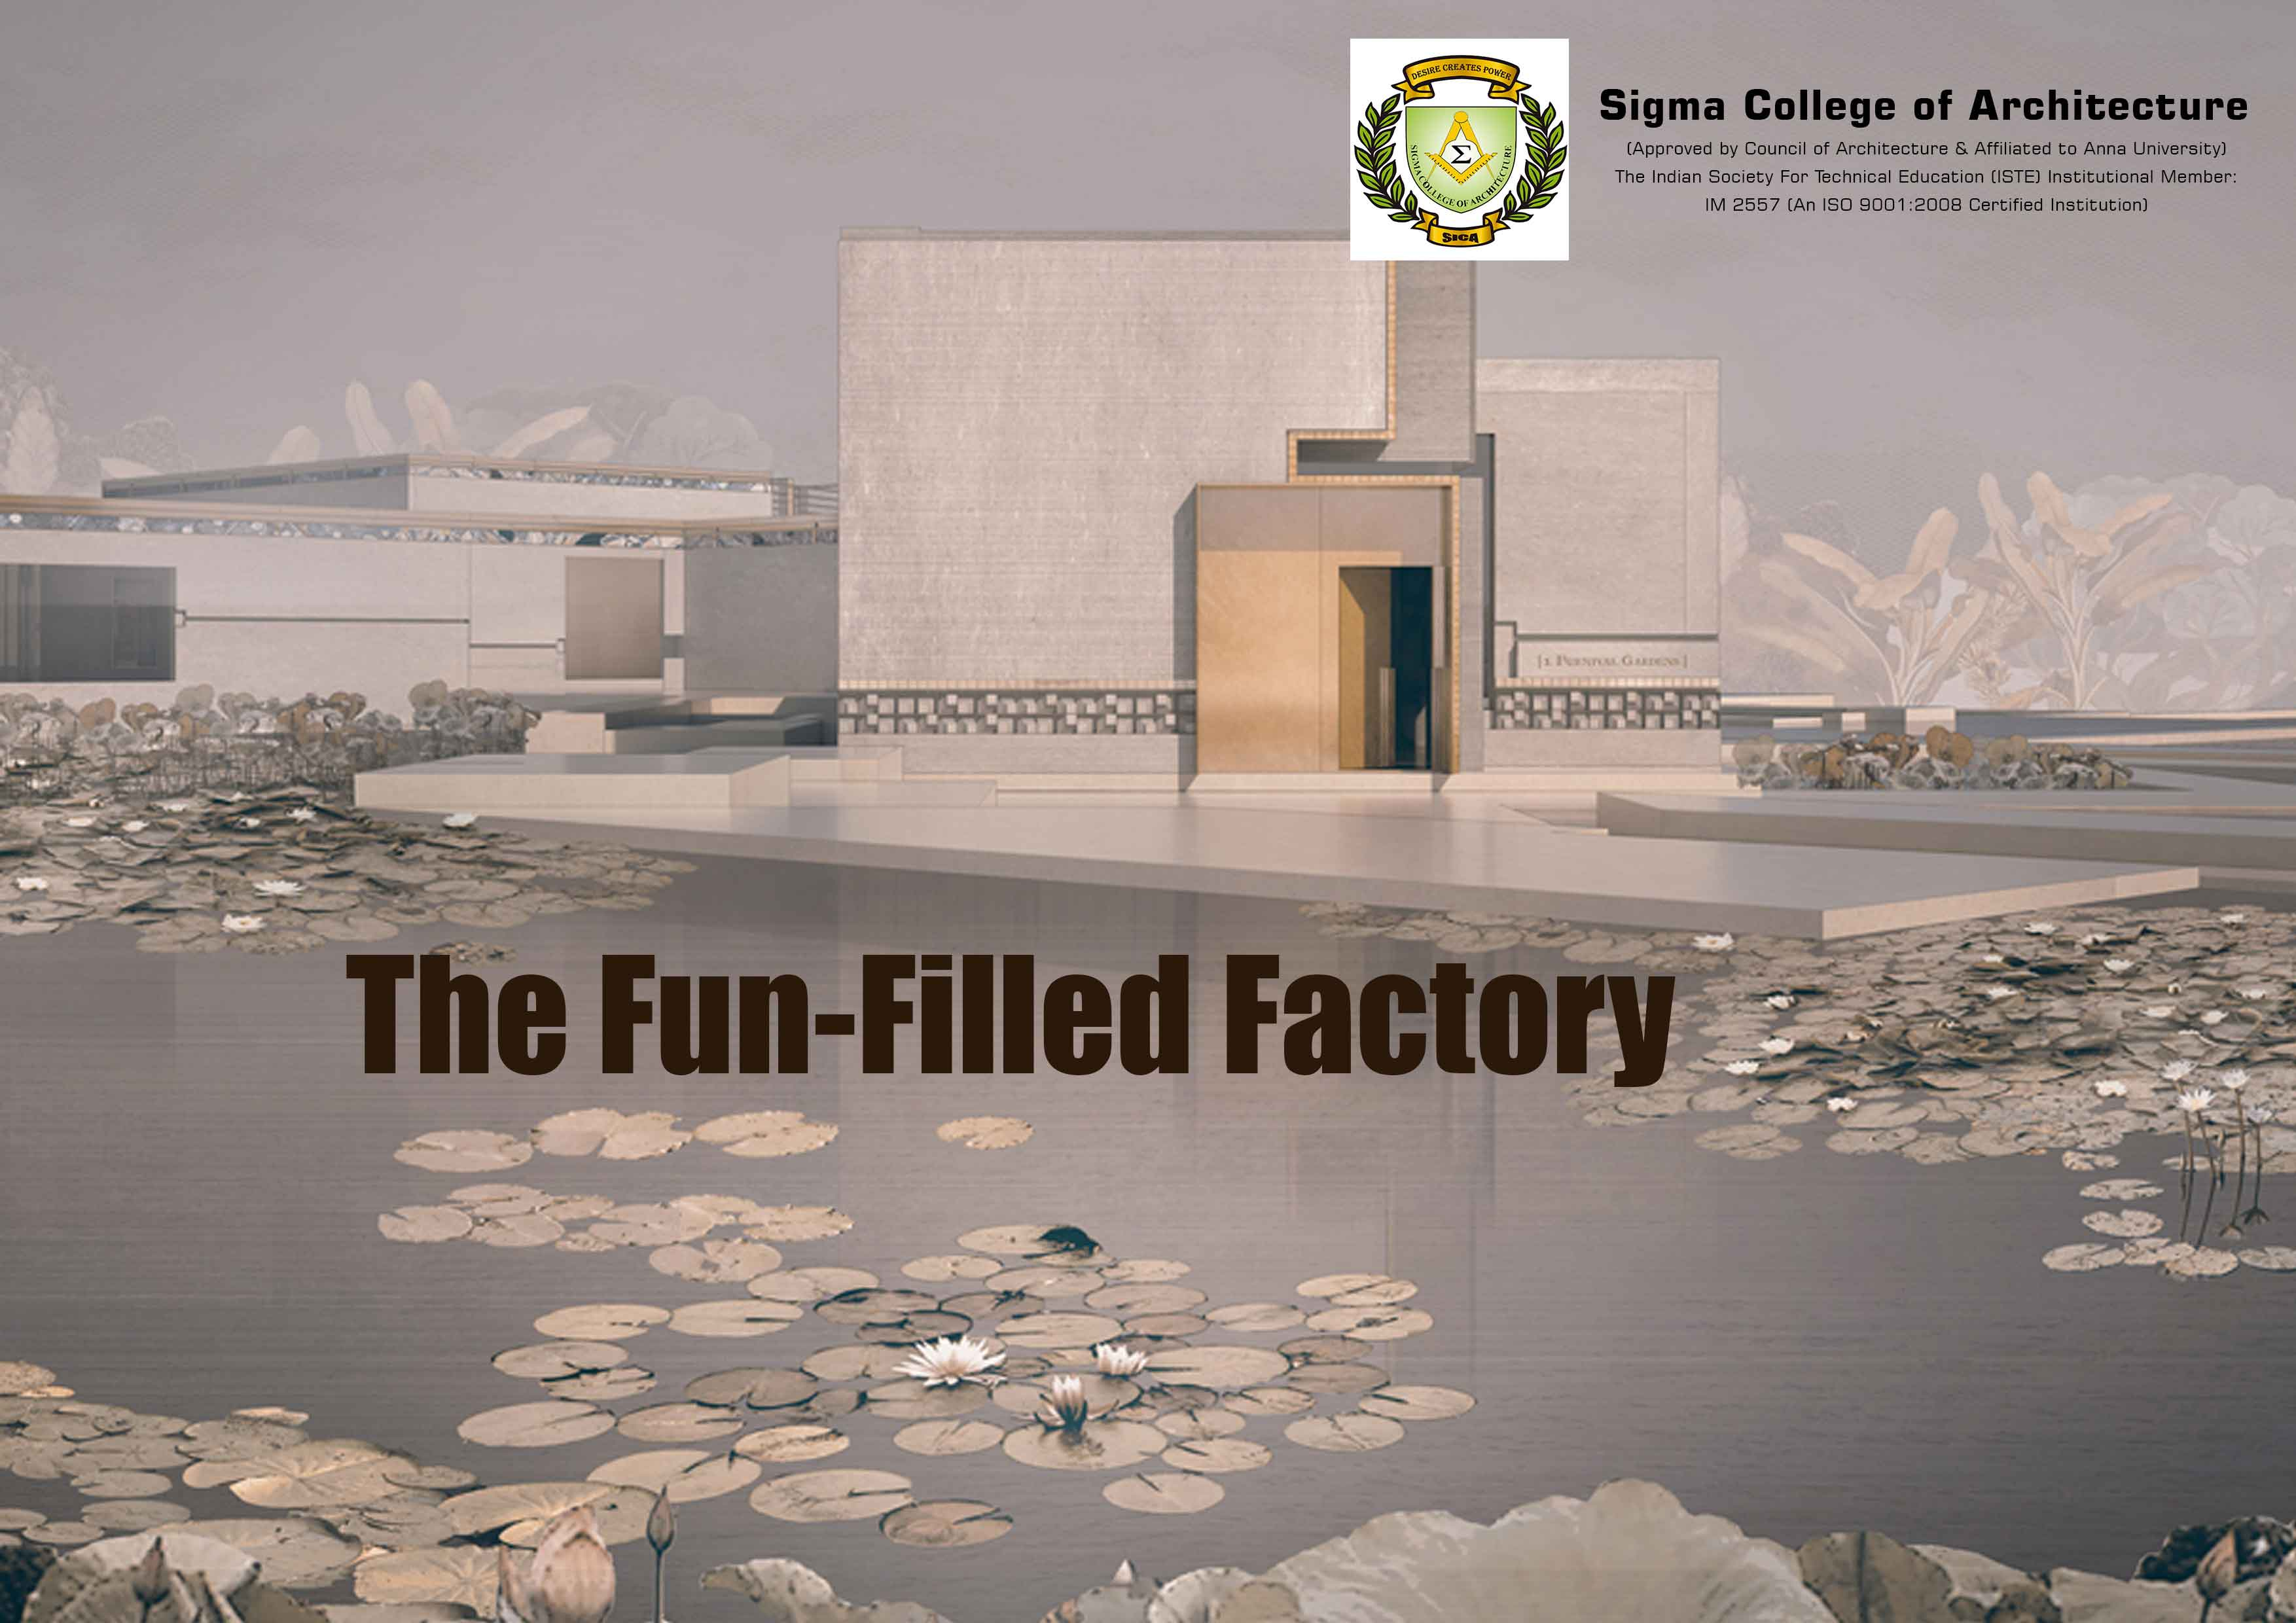 The Fun-Filled Factory